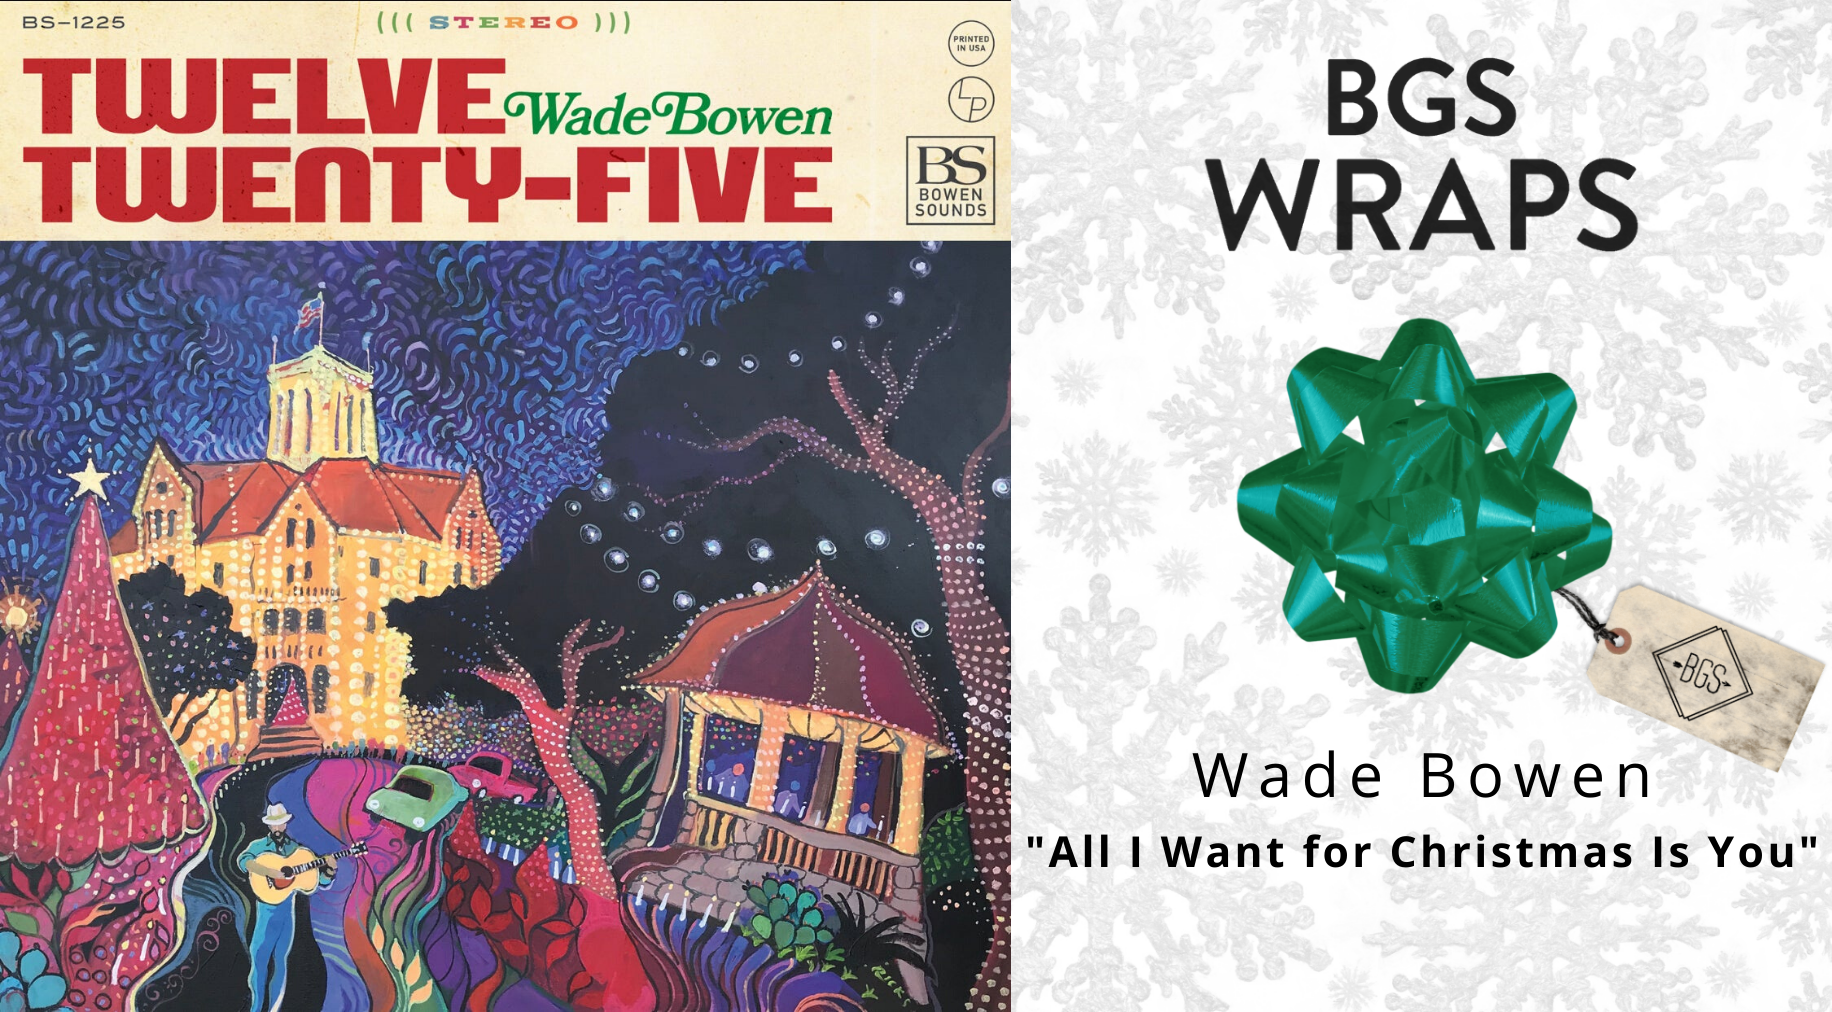 """BGS WRAPS: Wade Bowen, """"All I Want for Christmas Is You"""""""